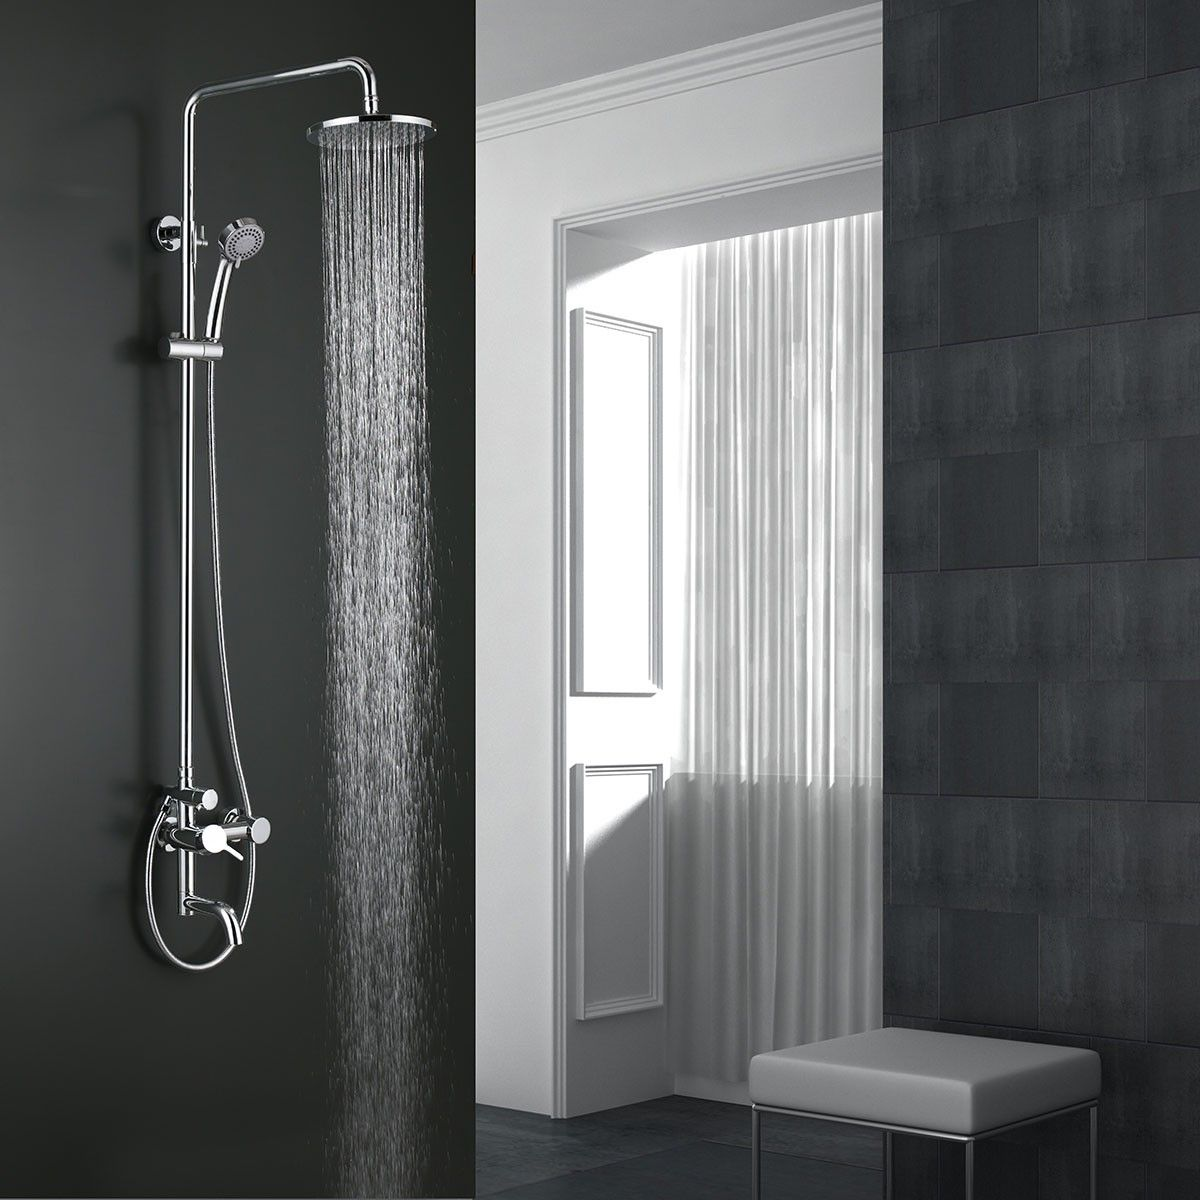 Rain Shower Head Bathtub Faucet Brass With Chrome